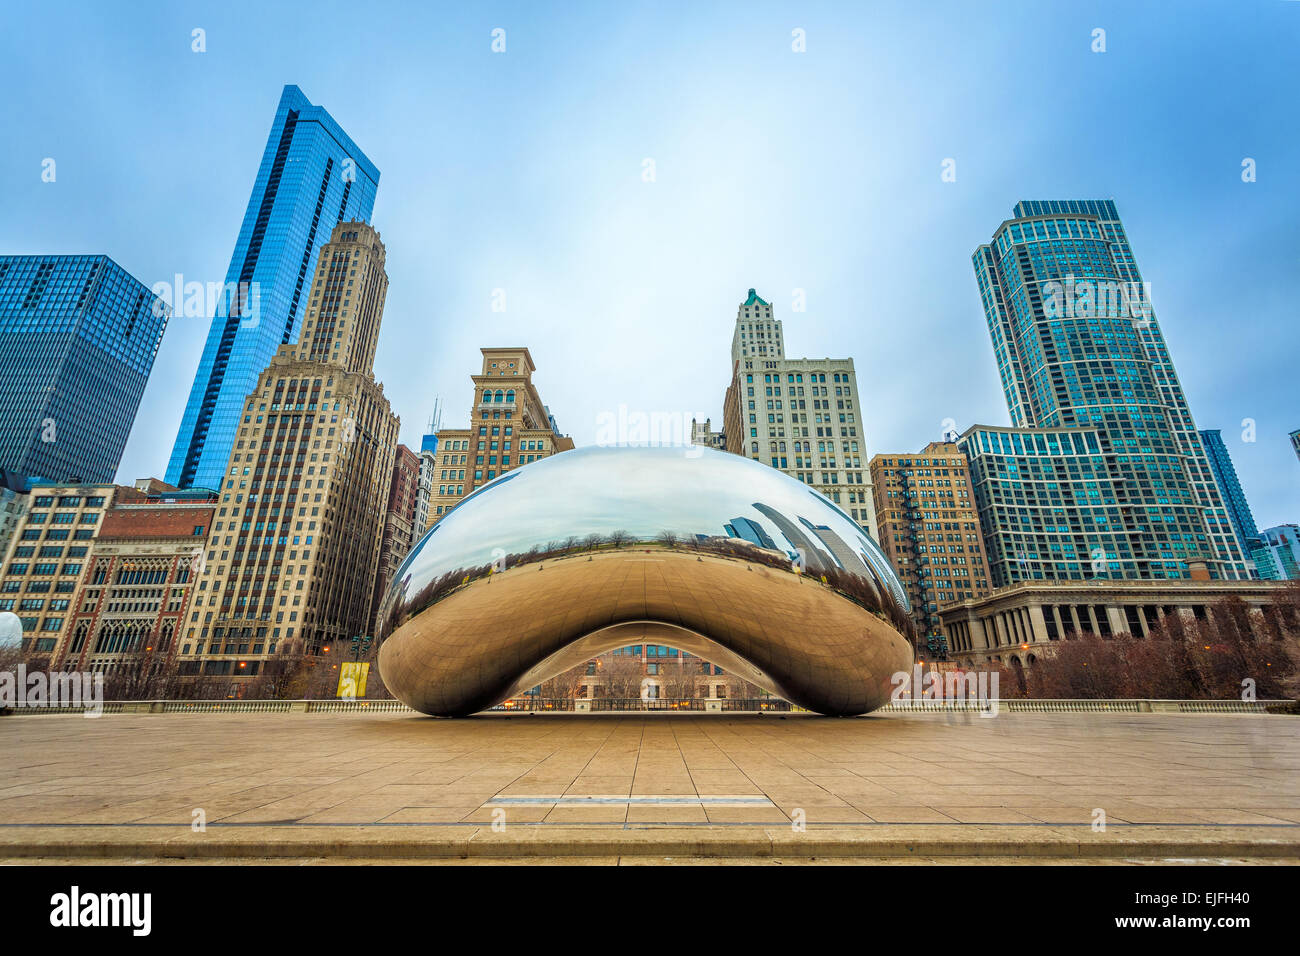 Cloud Gate in a cloudy weather - Stock Image